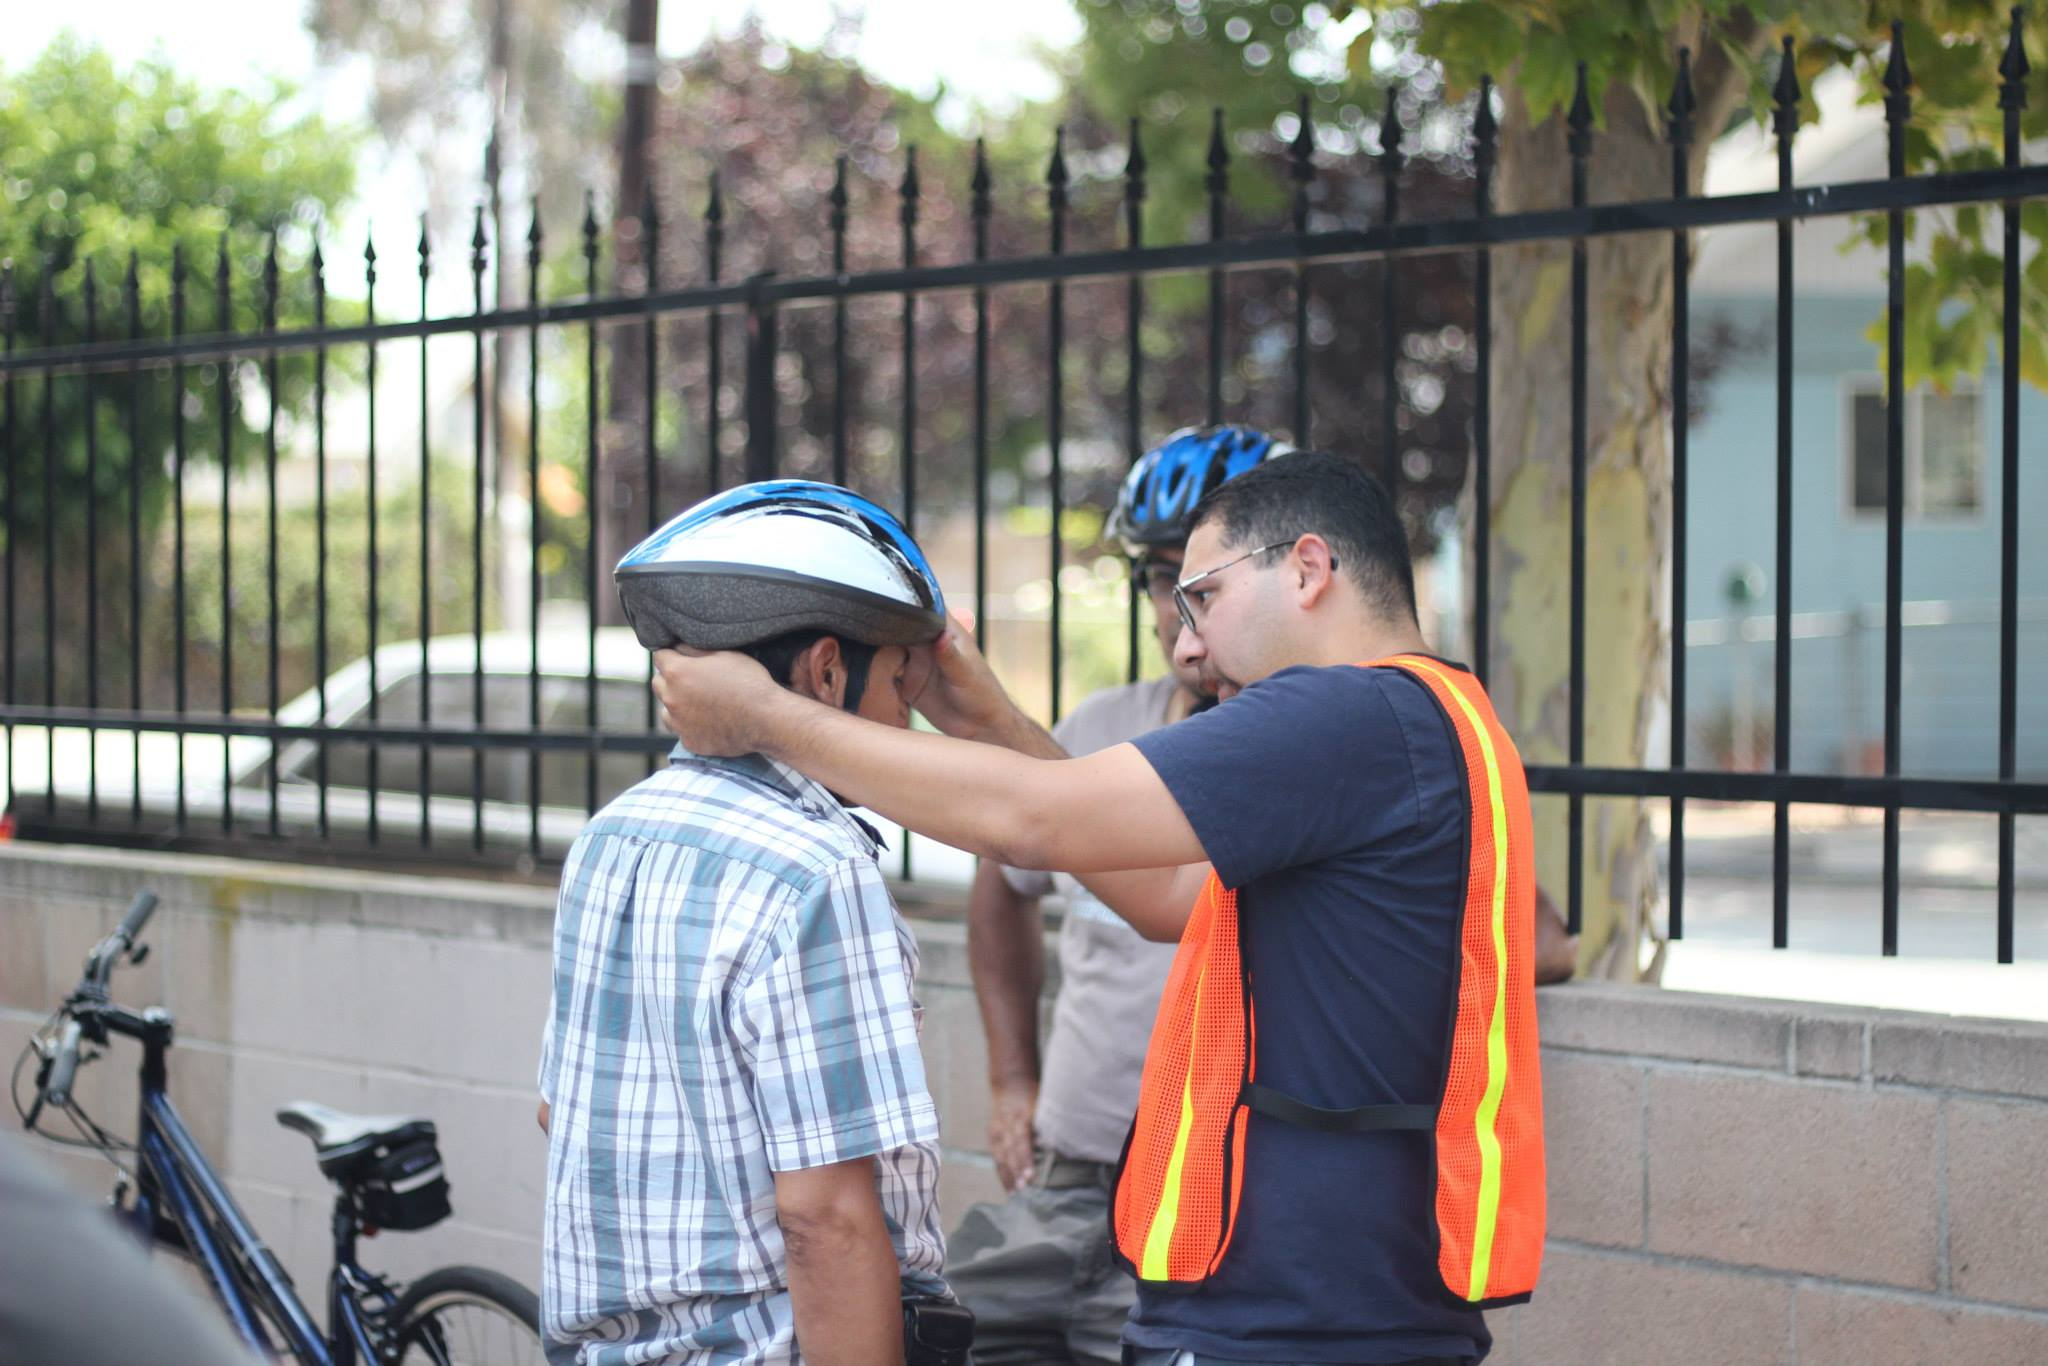 Andy fitting helmet 6.2013.jpg